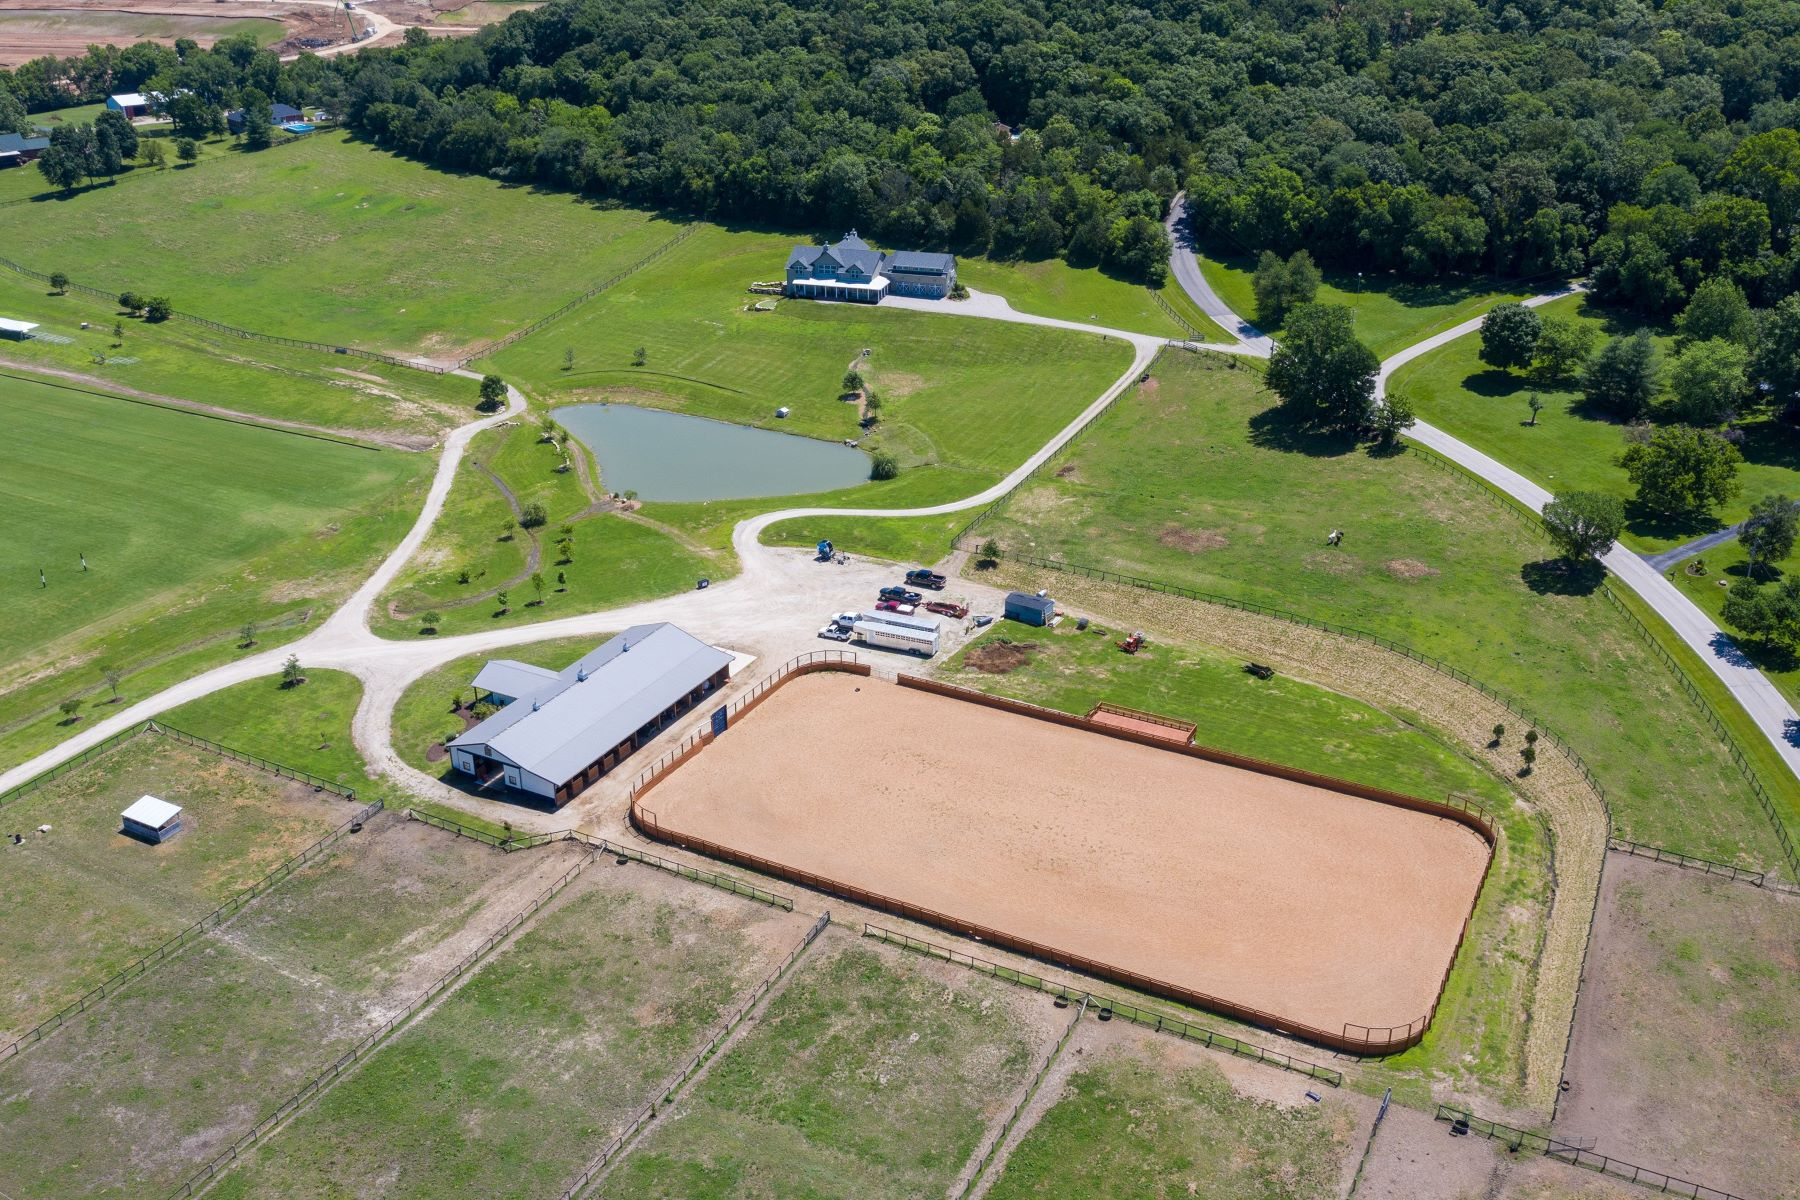 Single Family Homes for Sale at Southern Springs Farm Premier Polo Estate 96 High Trails Drive Eureka, Missouri 63025 United States